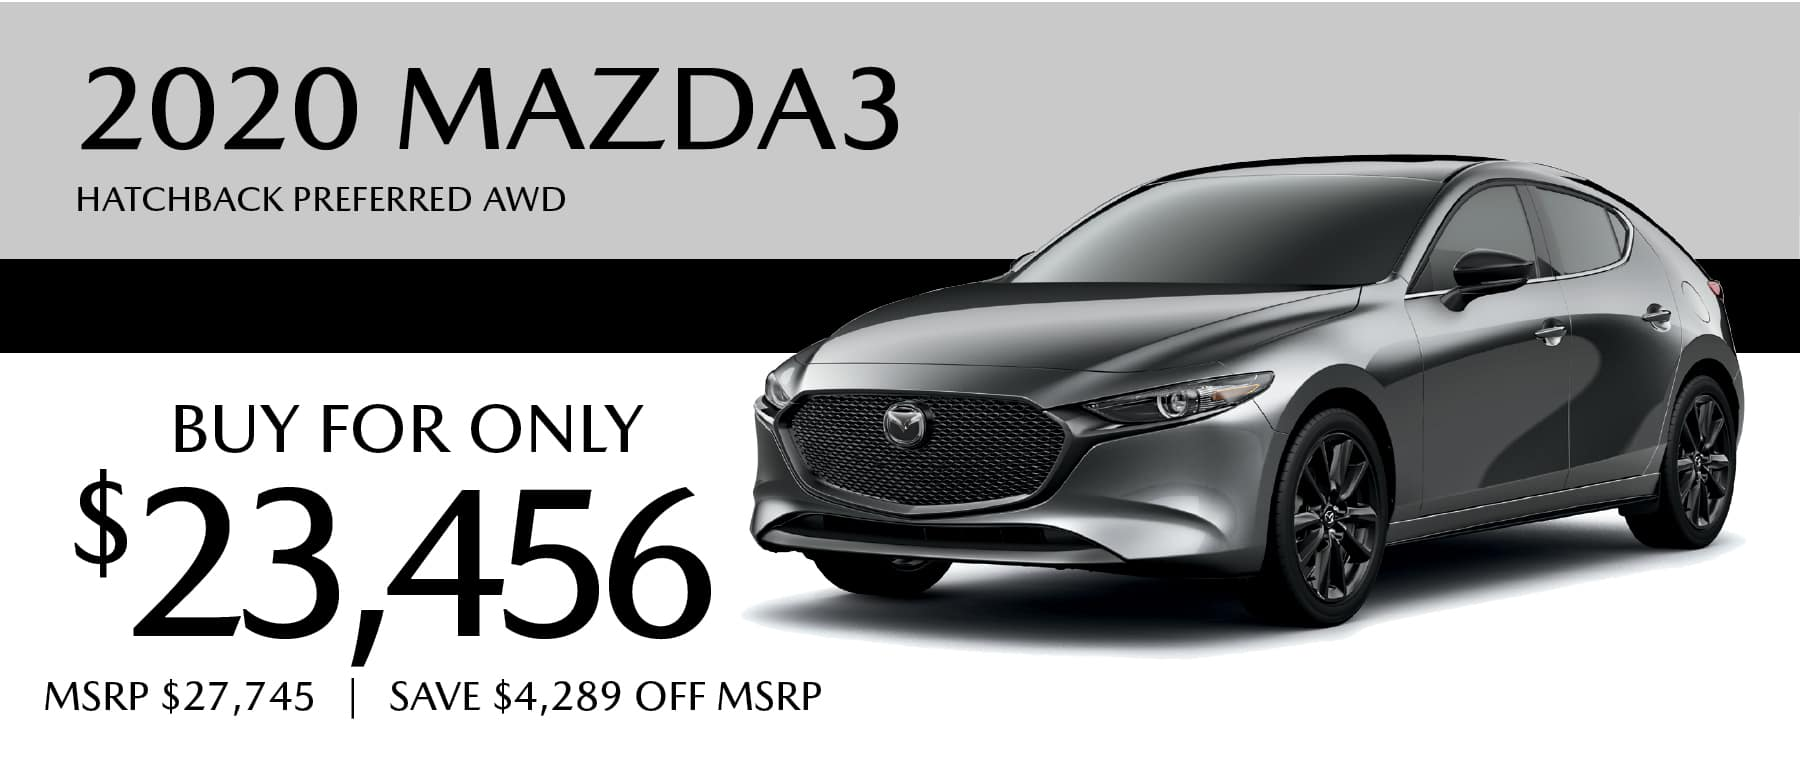 2020 Mazda3 Hatchback Preferred AWD buy for $23,456 and save $4,289 off MSRP